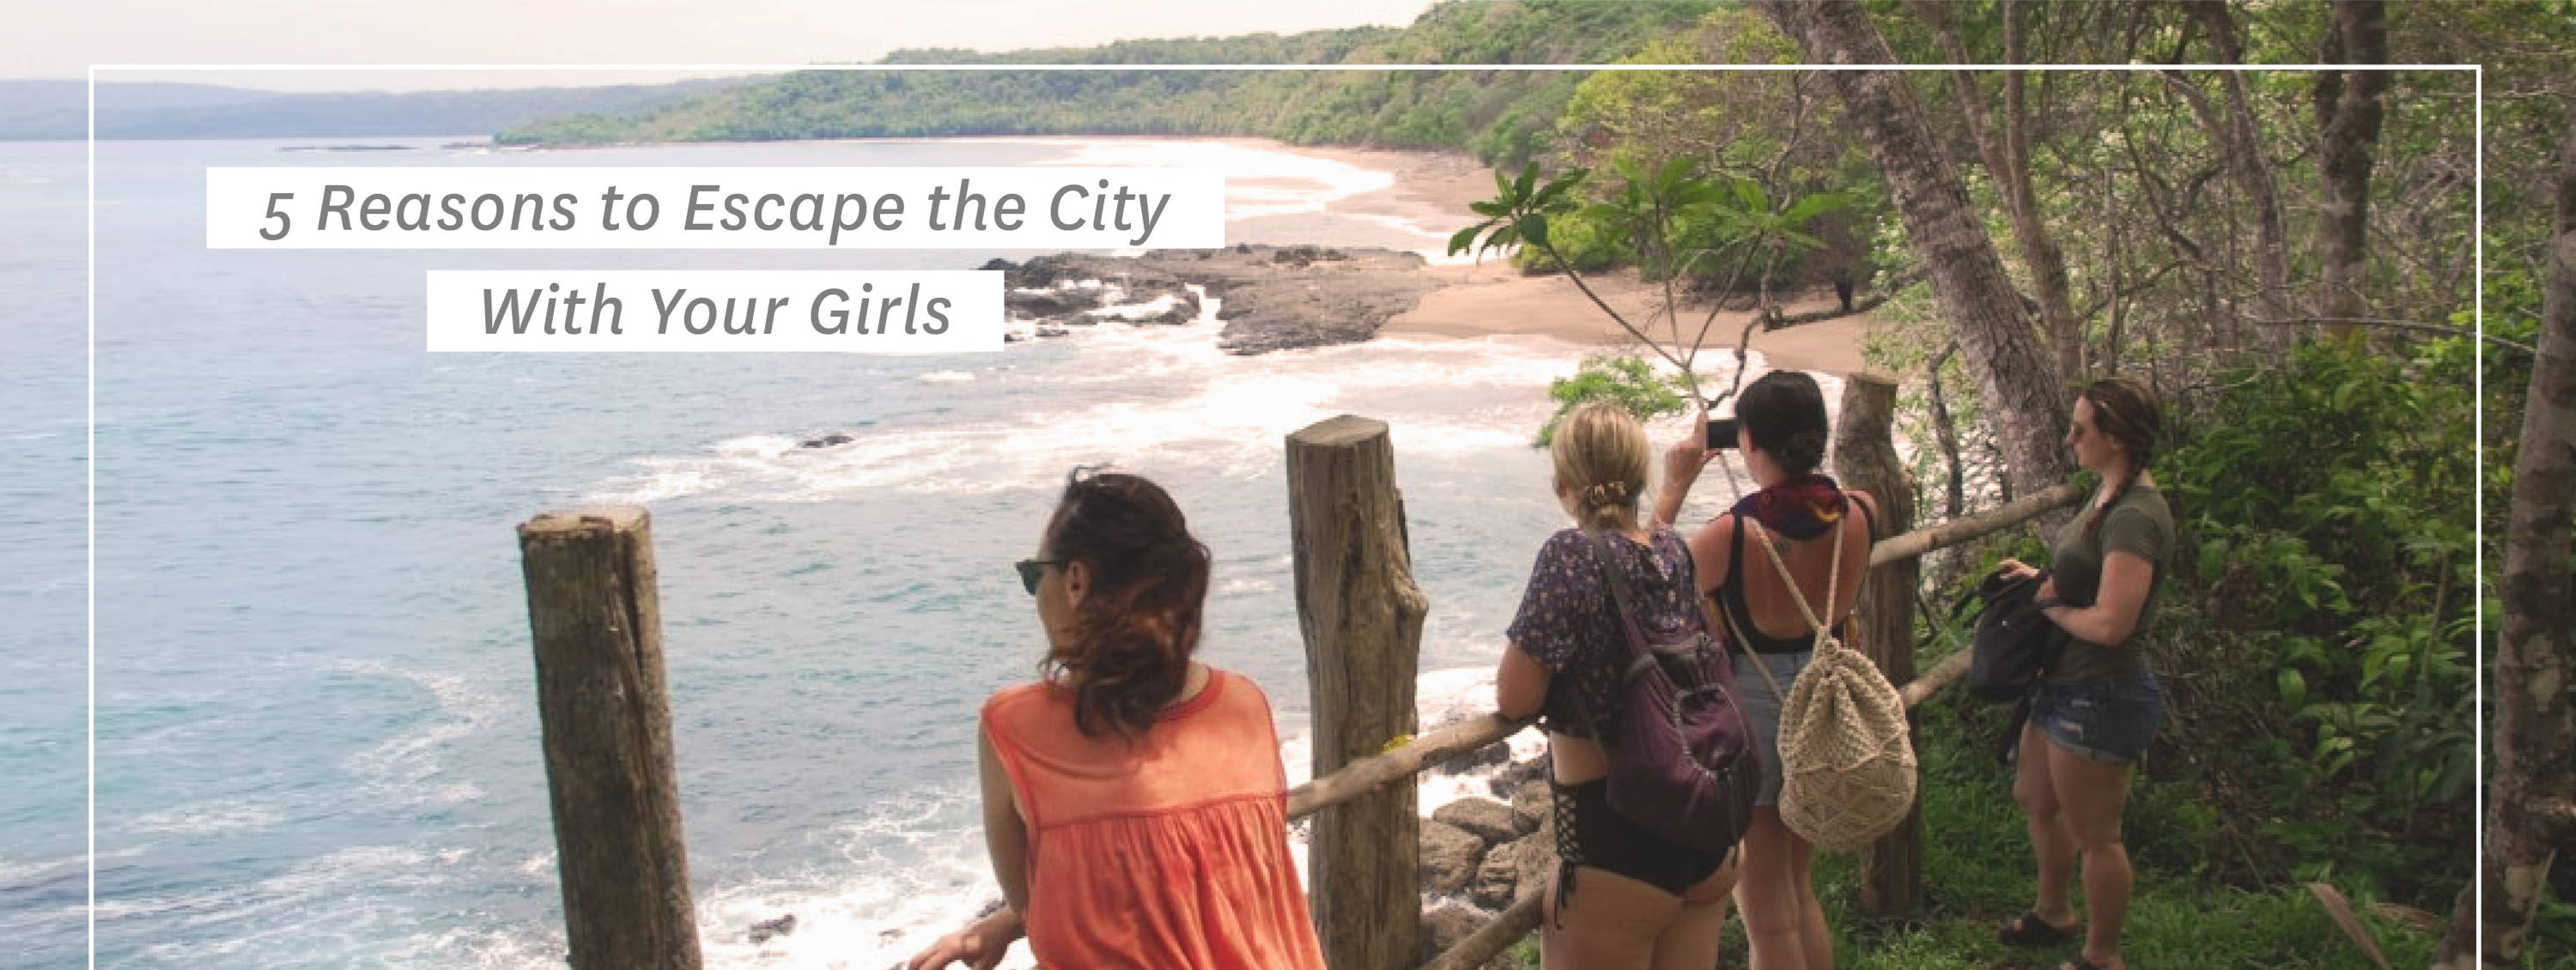 5 Reasons to Escape the City with Your Girls